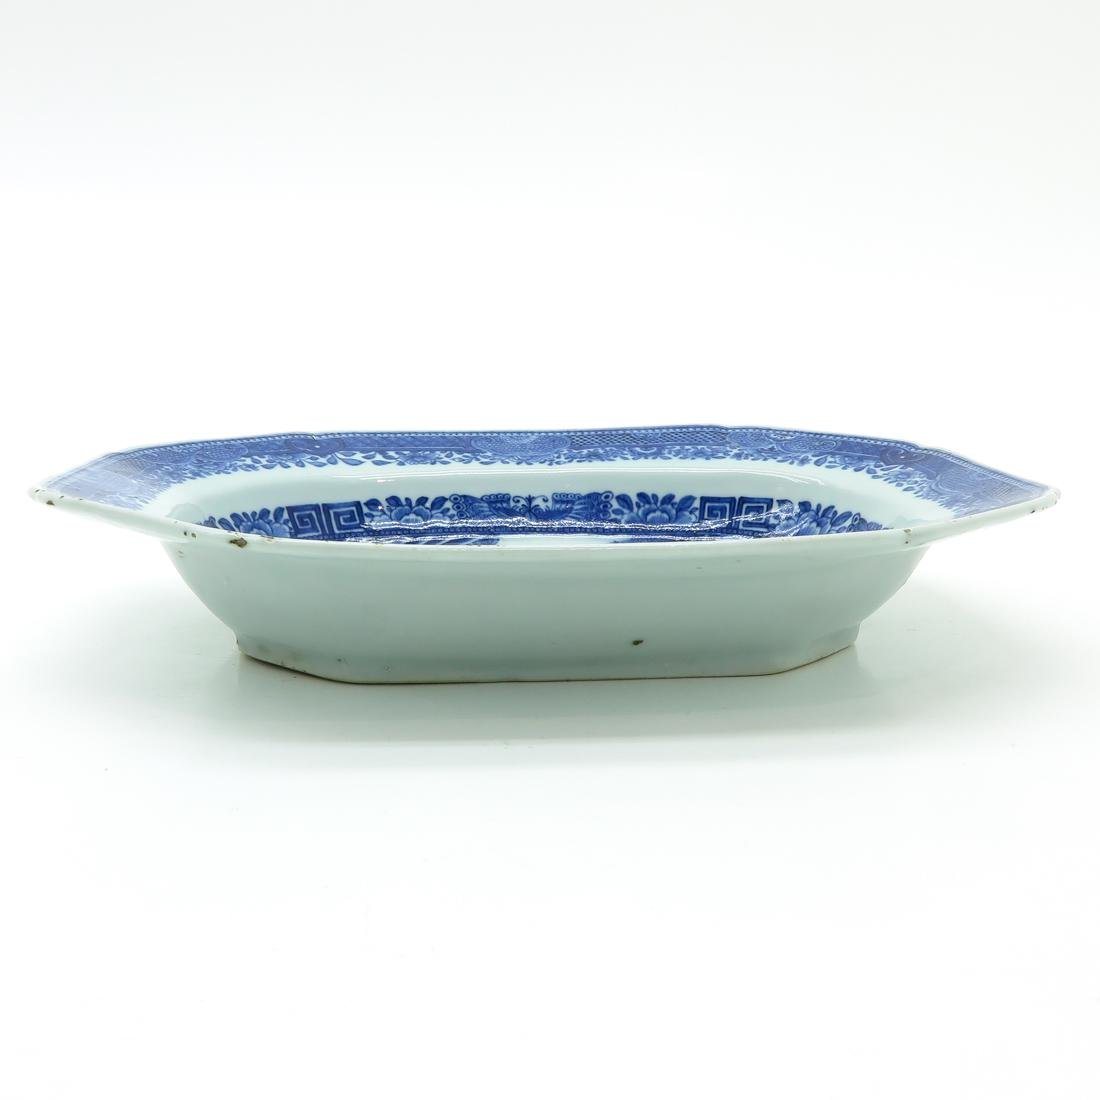 Serving Plate - 5